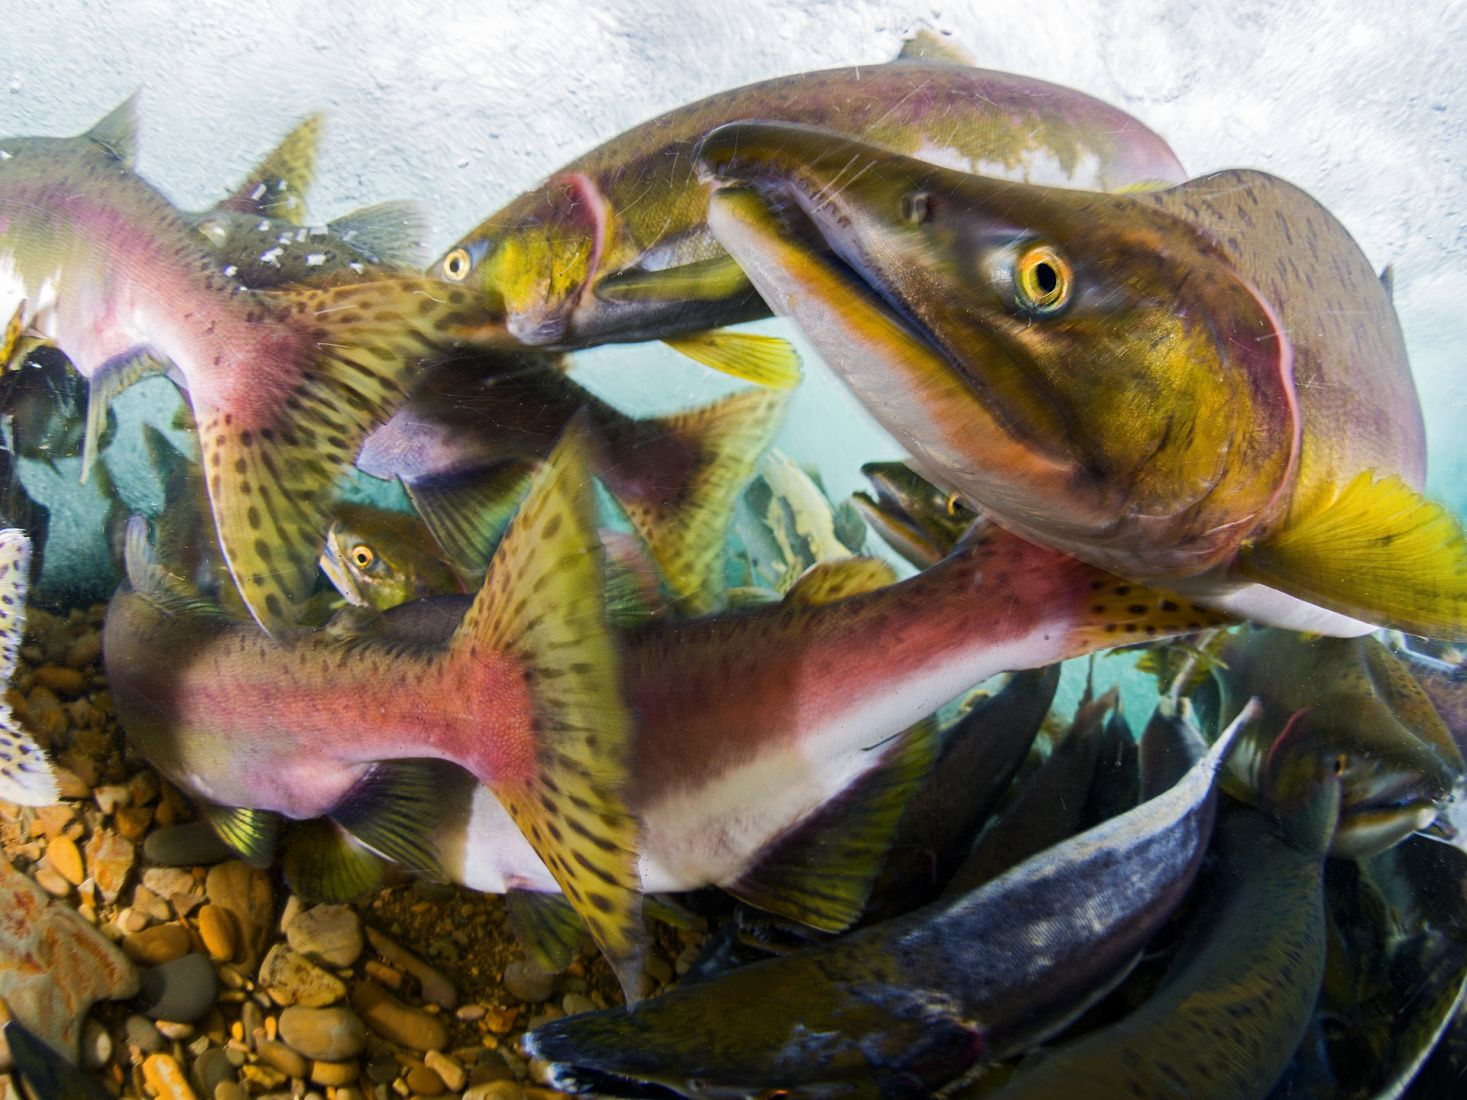 Spawning Salmon, © Sergey Shanin, Winner, Golden Turtle Photo Contest